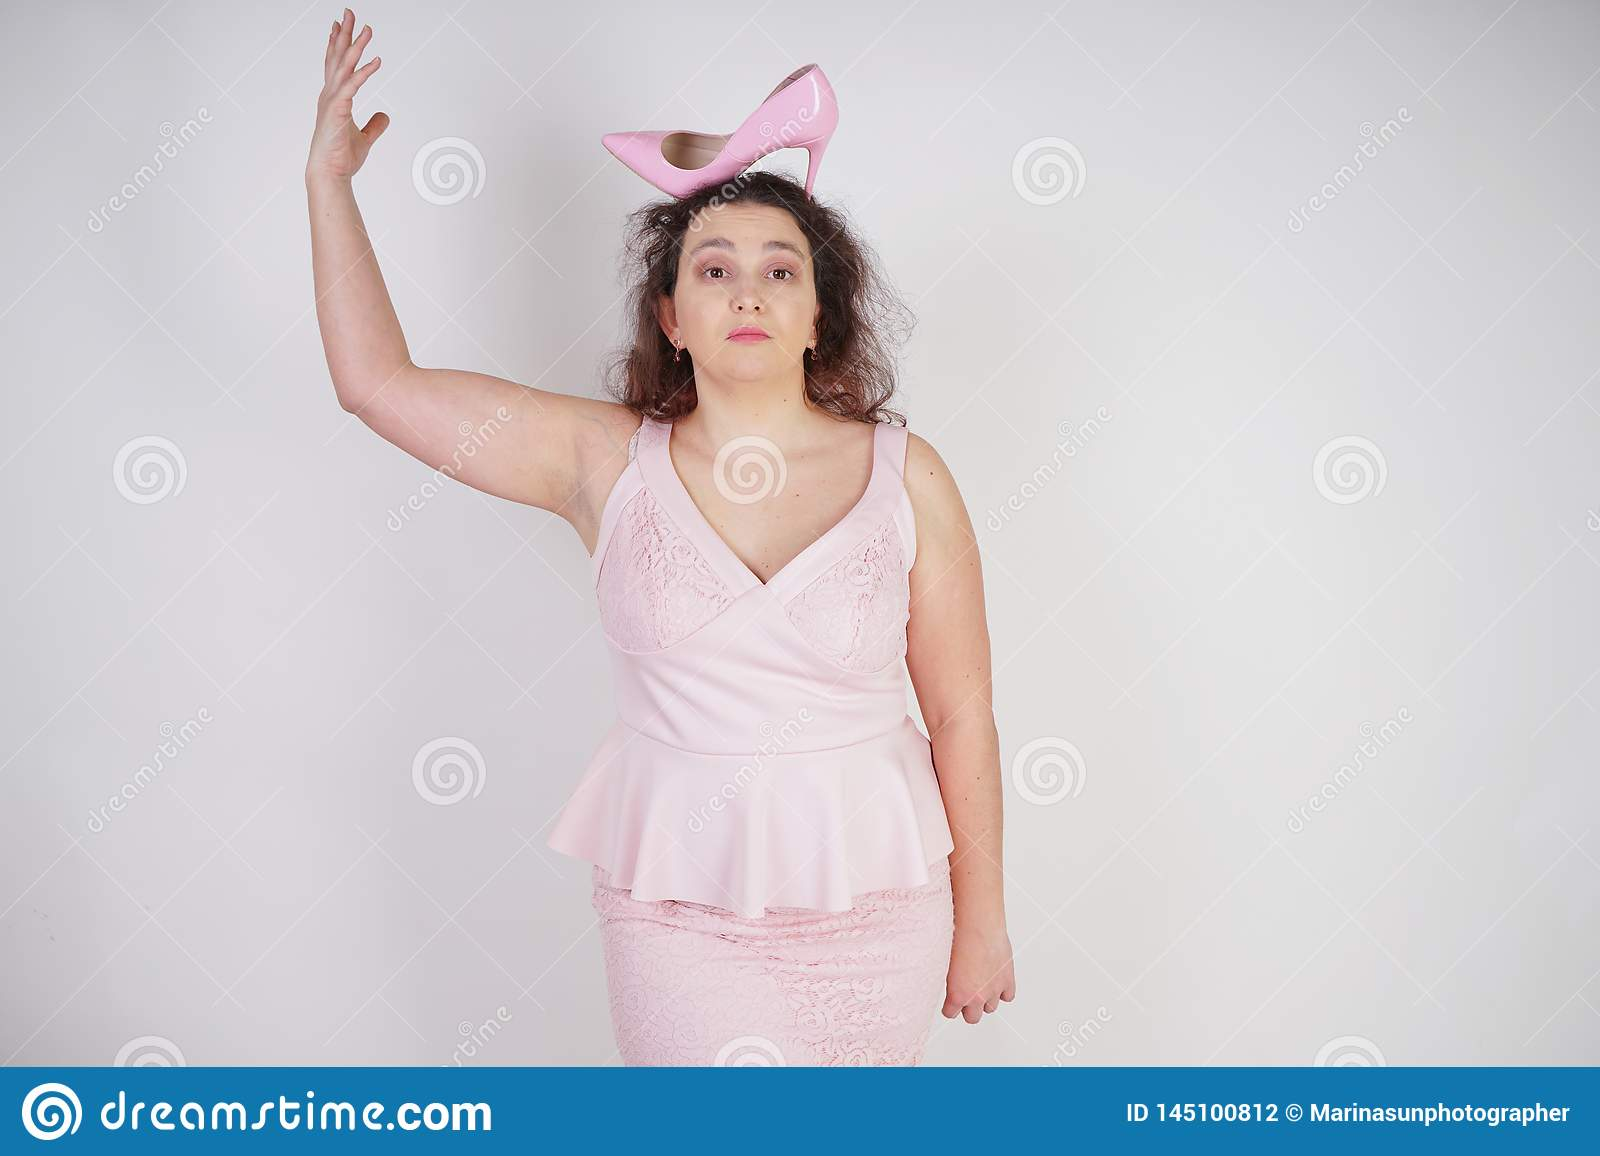 Pretty plump woman in pink dress with patent leather stiletto heels on white background in Studio